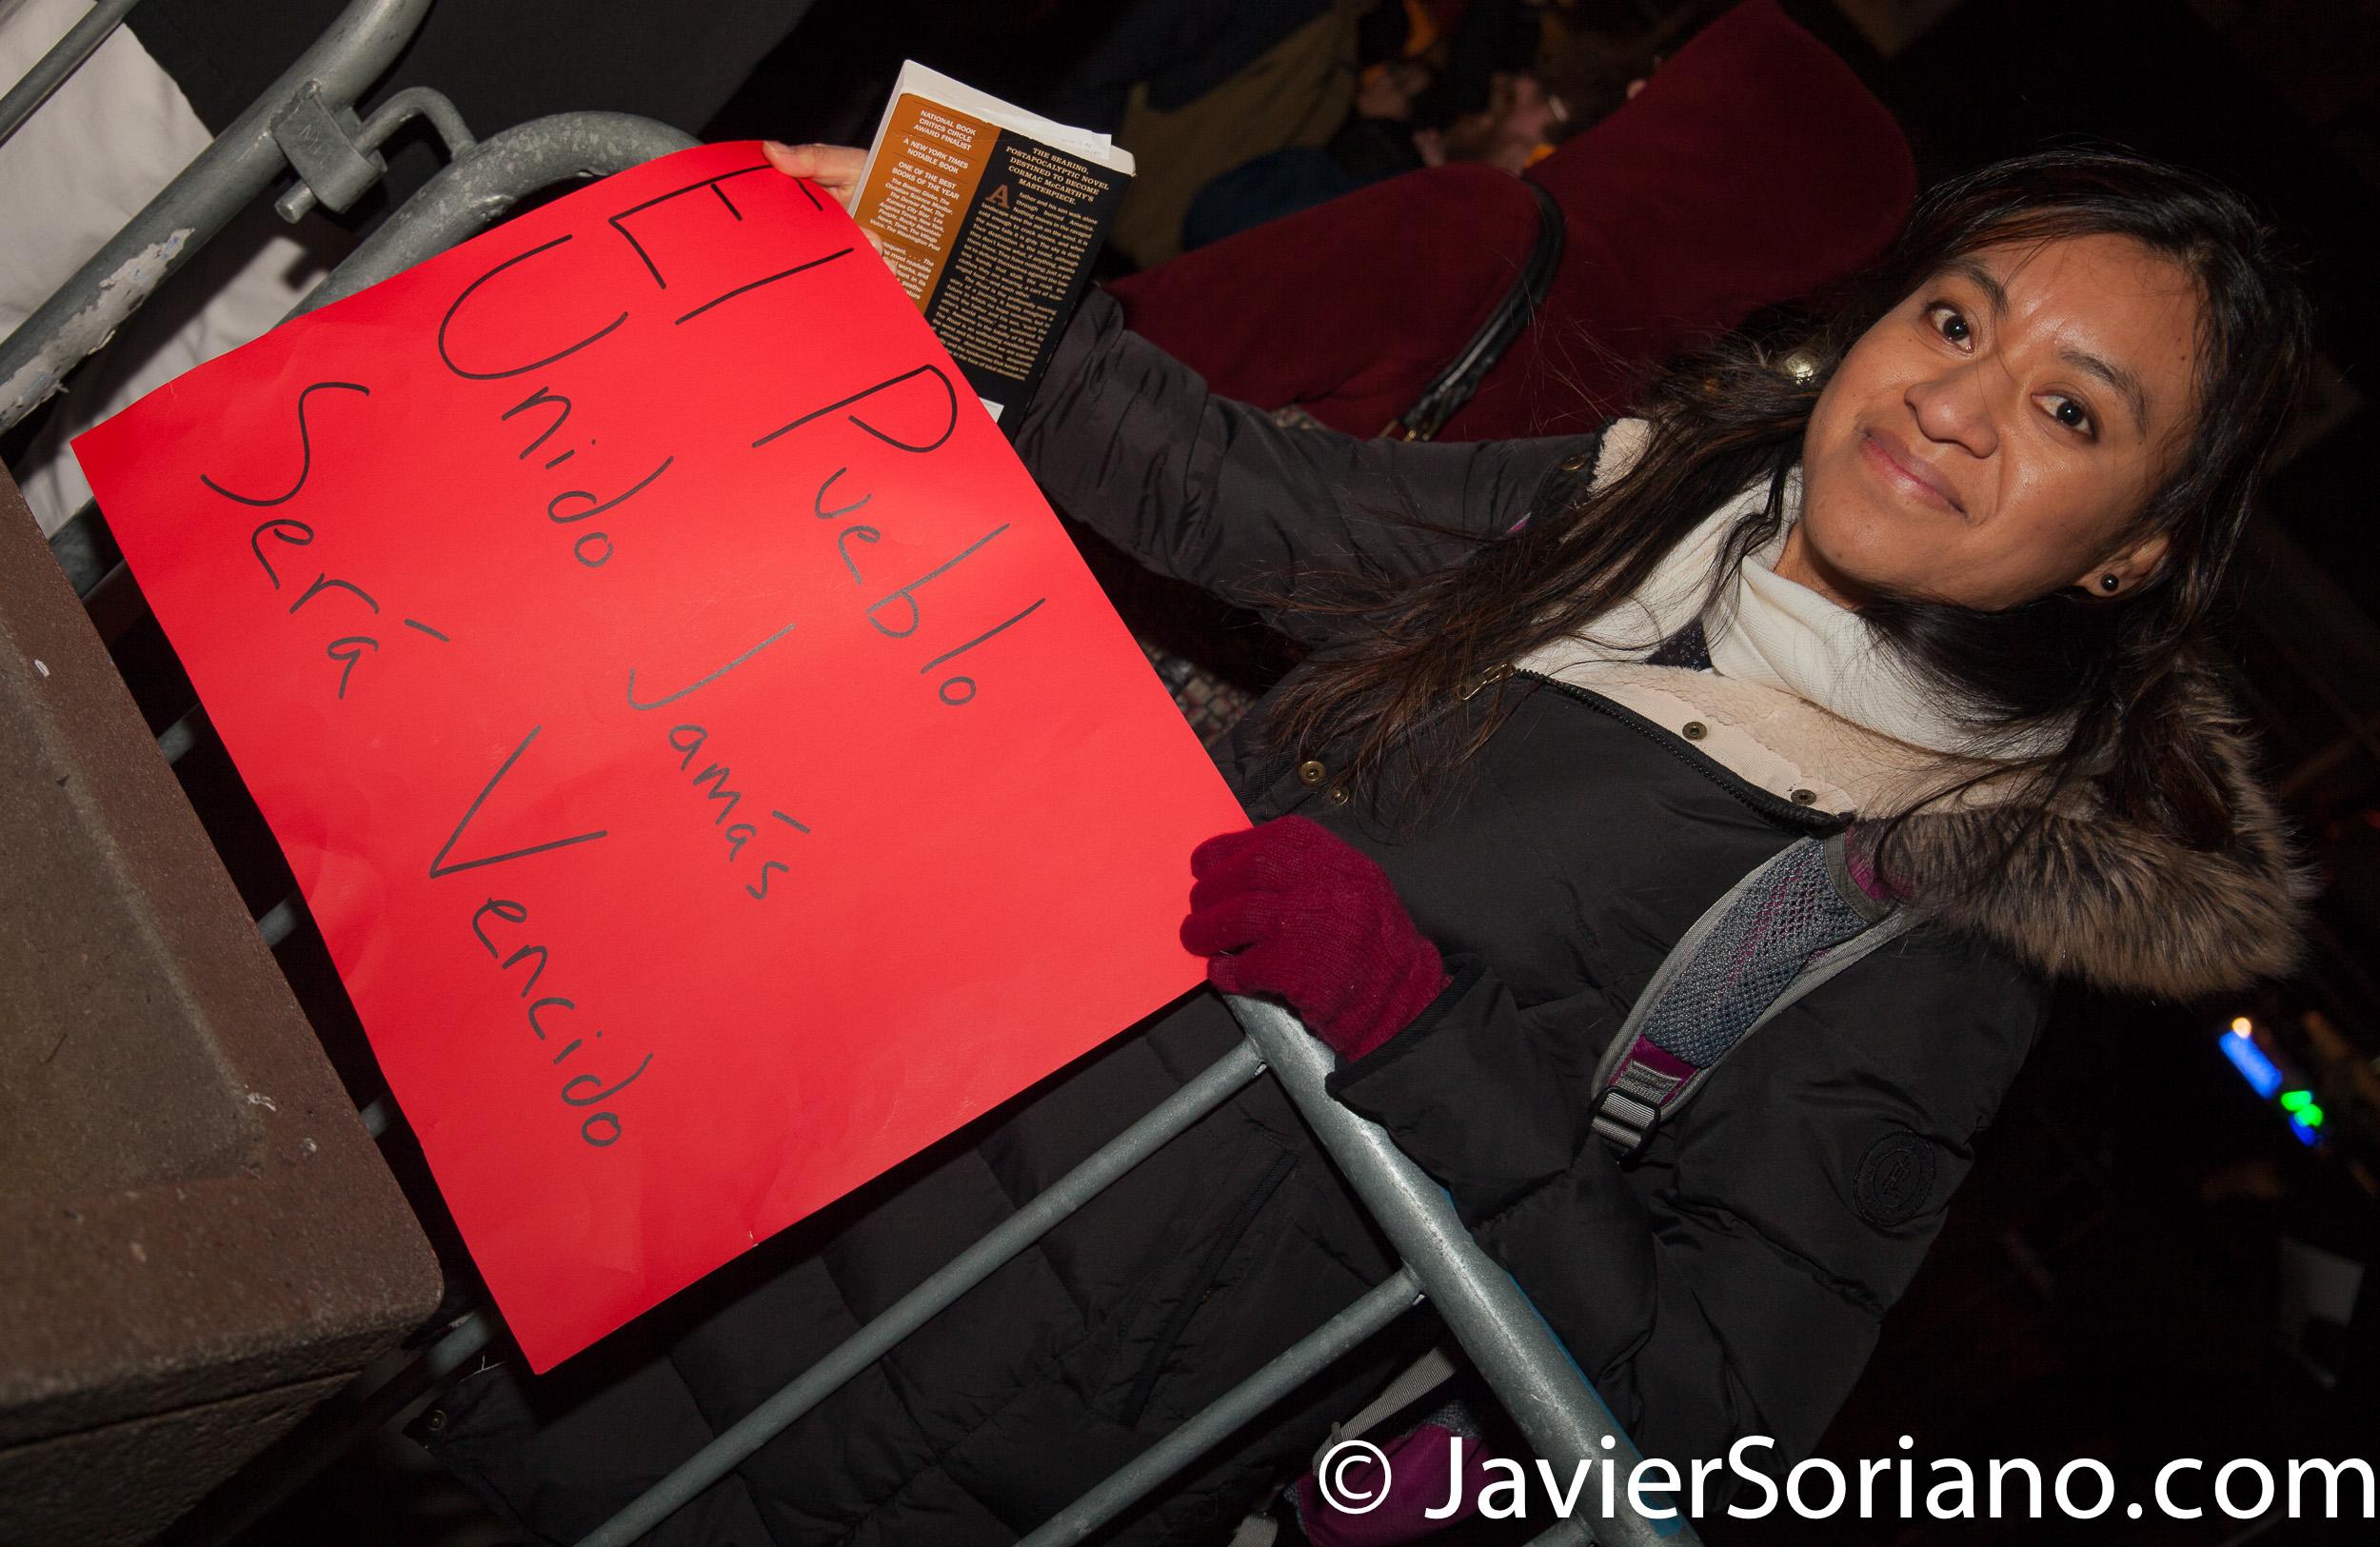 2/16/2017 NYC - Stop ICE raids and Free Daniel Ramirez Medina. Photo by Javier Soriano/www.JavierSoriano.com